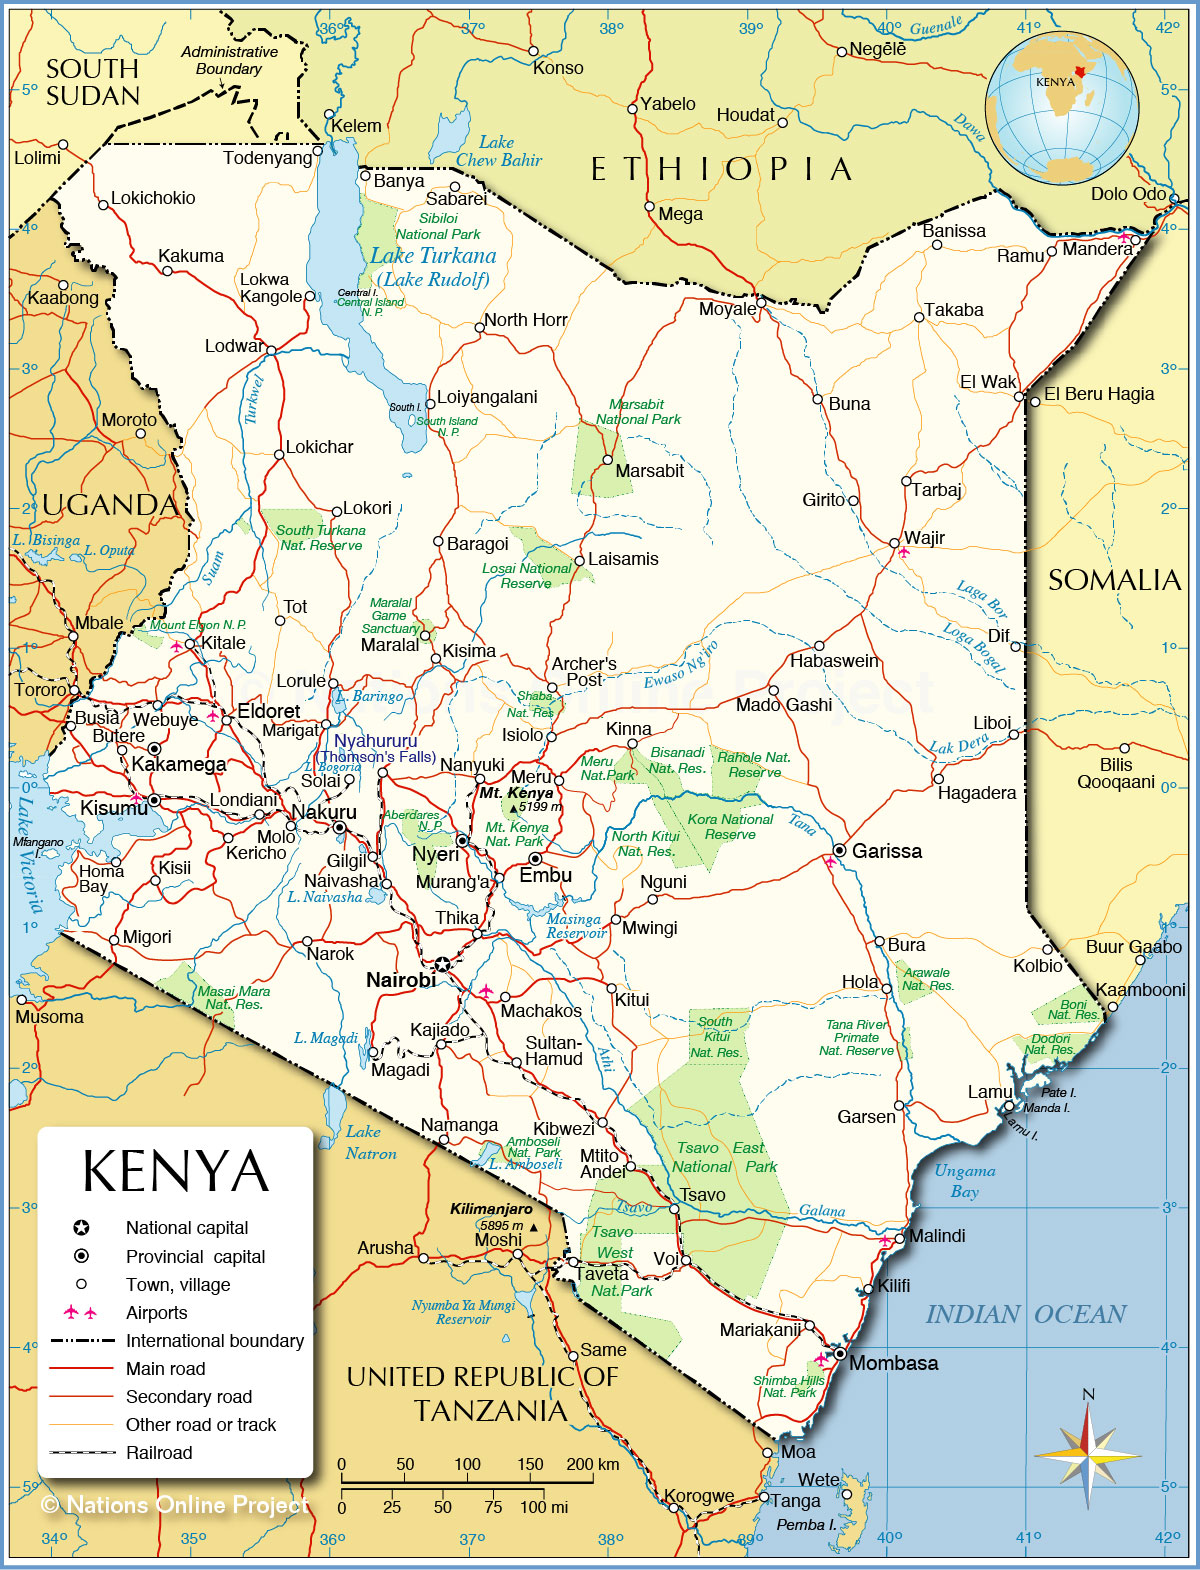 Political map of kenya nations online project political map of kenya gumiabroncs Gallery